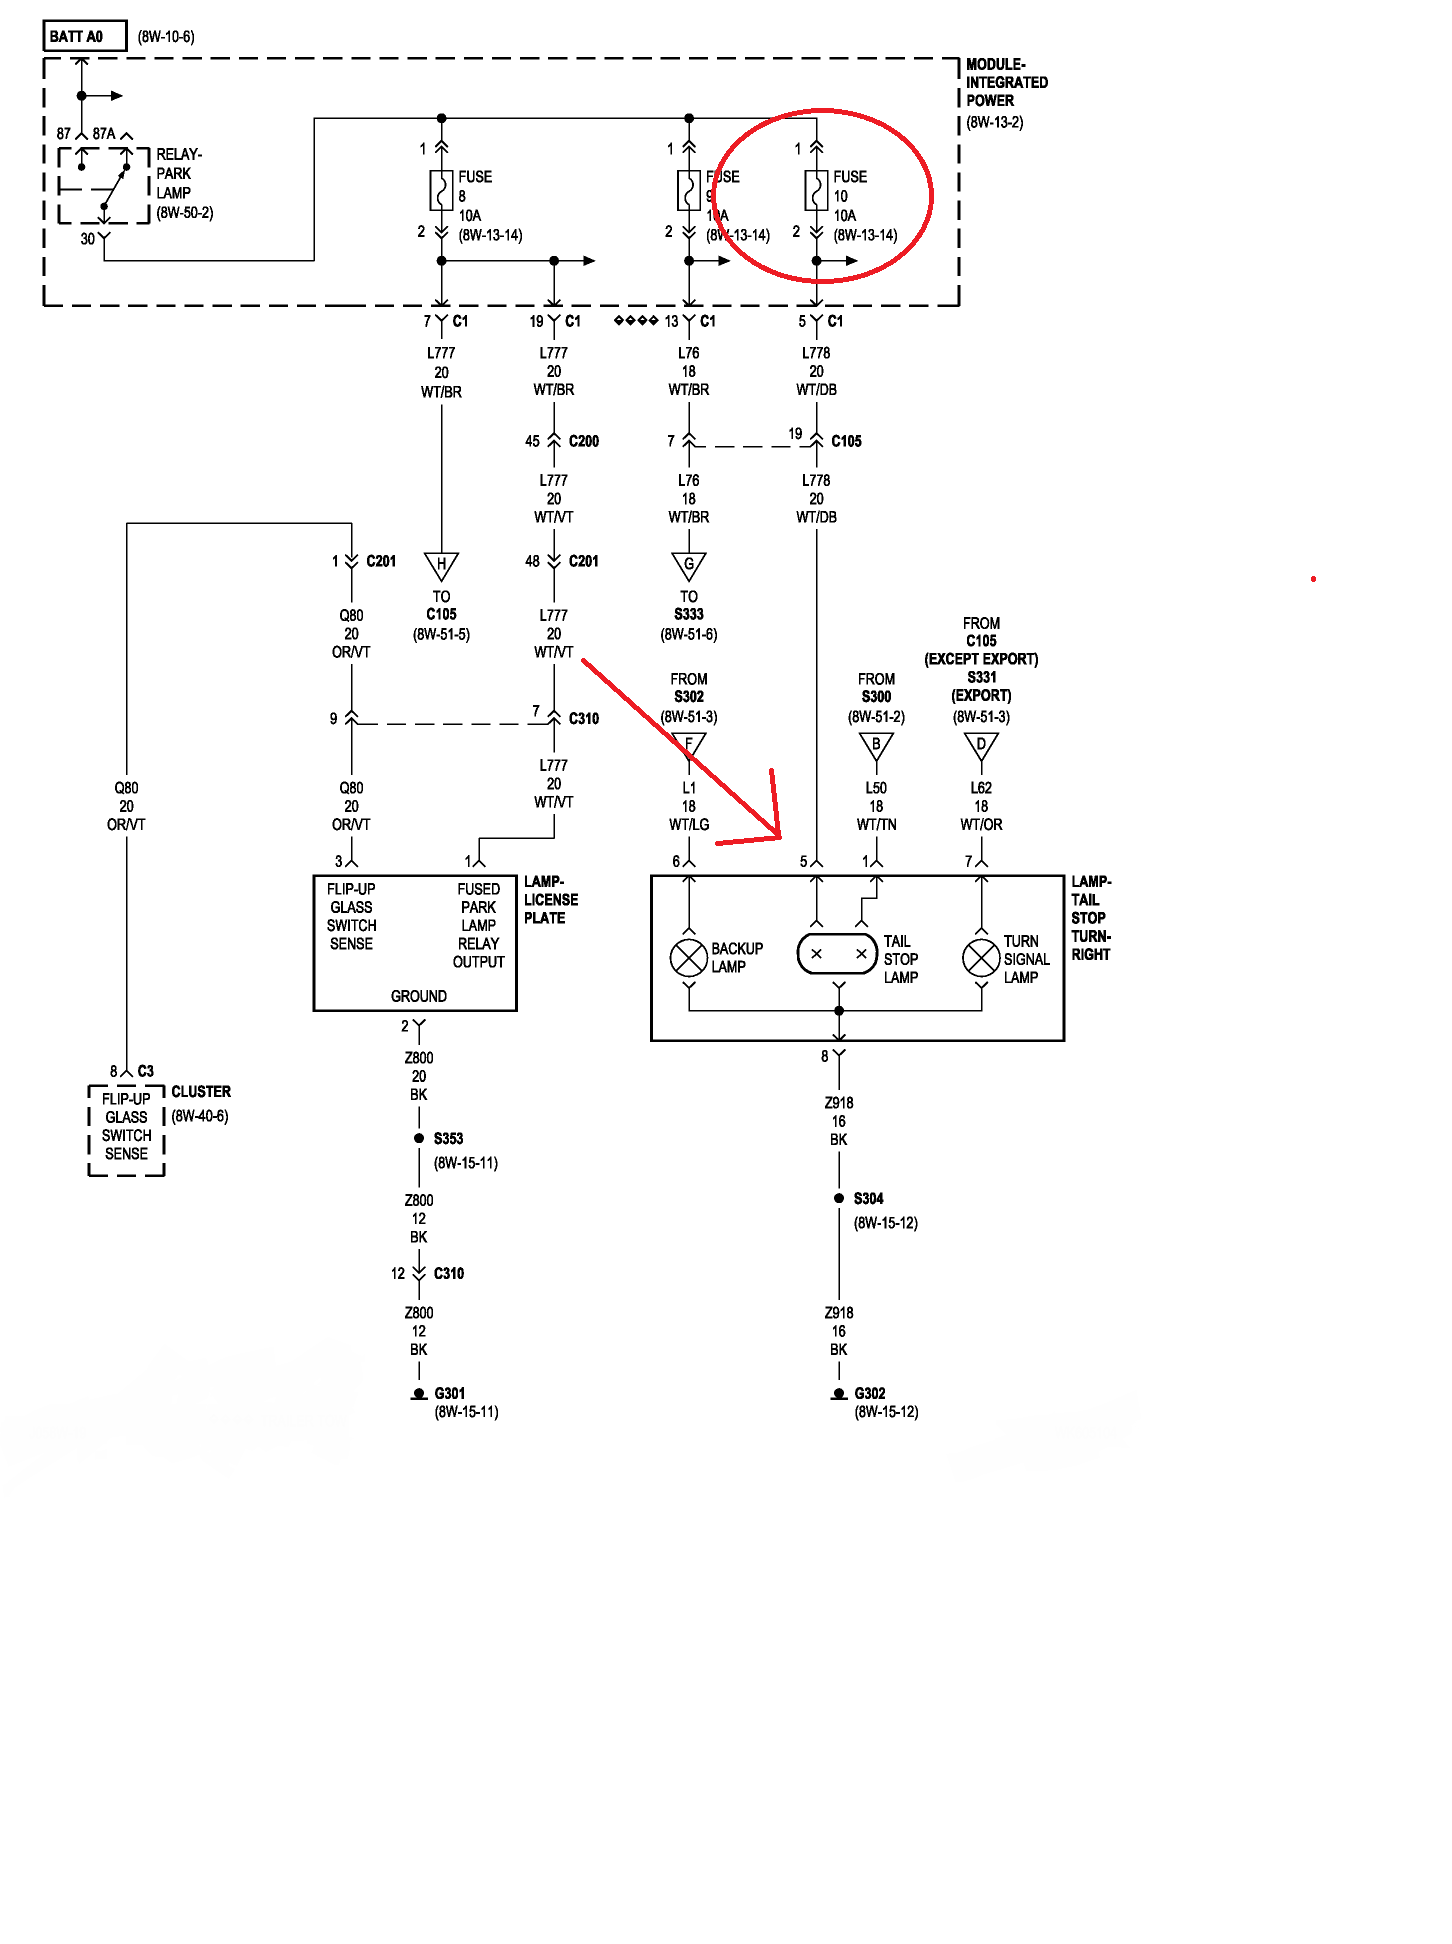 DIAGRAM] 2000 Cherokee Right Rear Wiring Diagram Schematic FULL Version HD  Quality Diagram Schematic - MAHAFFEYSTRUCTURE.ILVACHARTER.IT